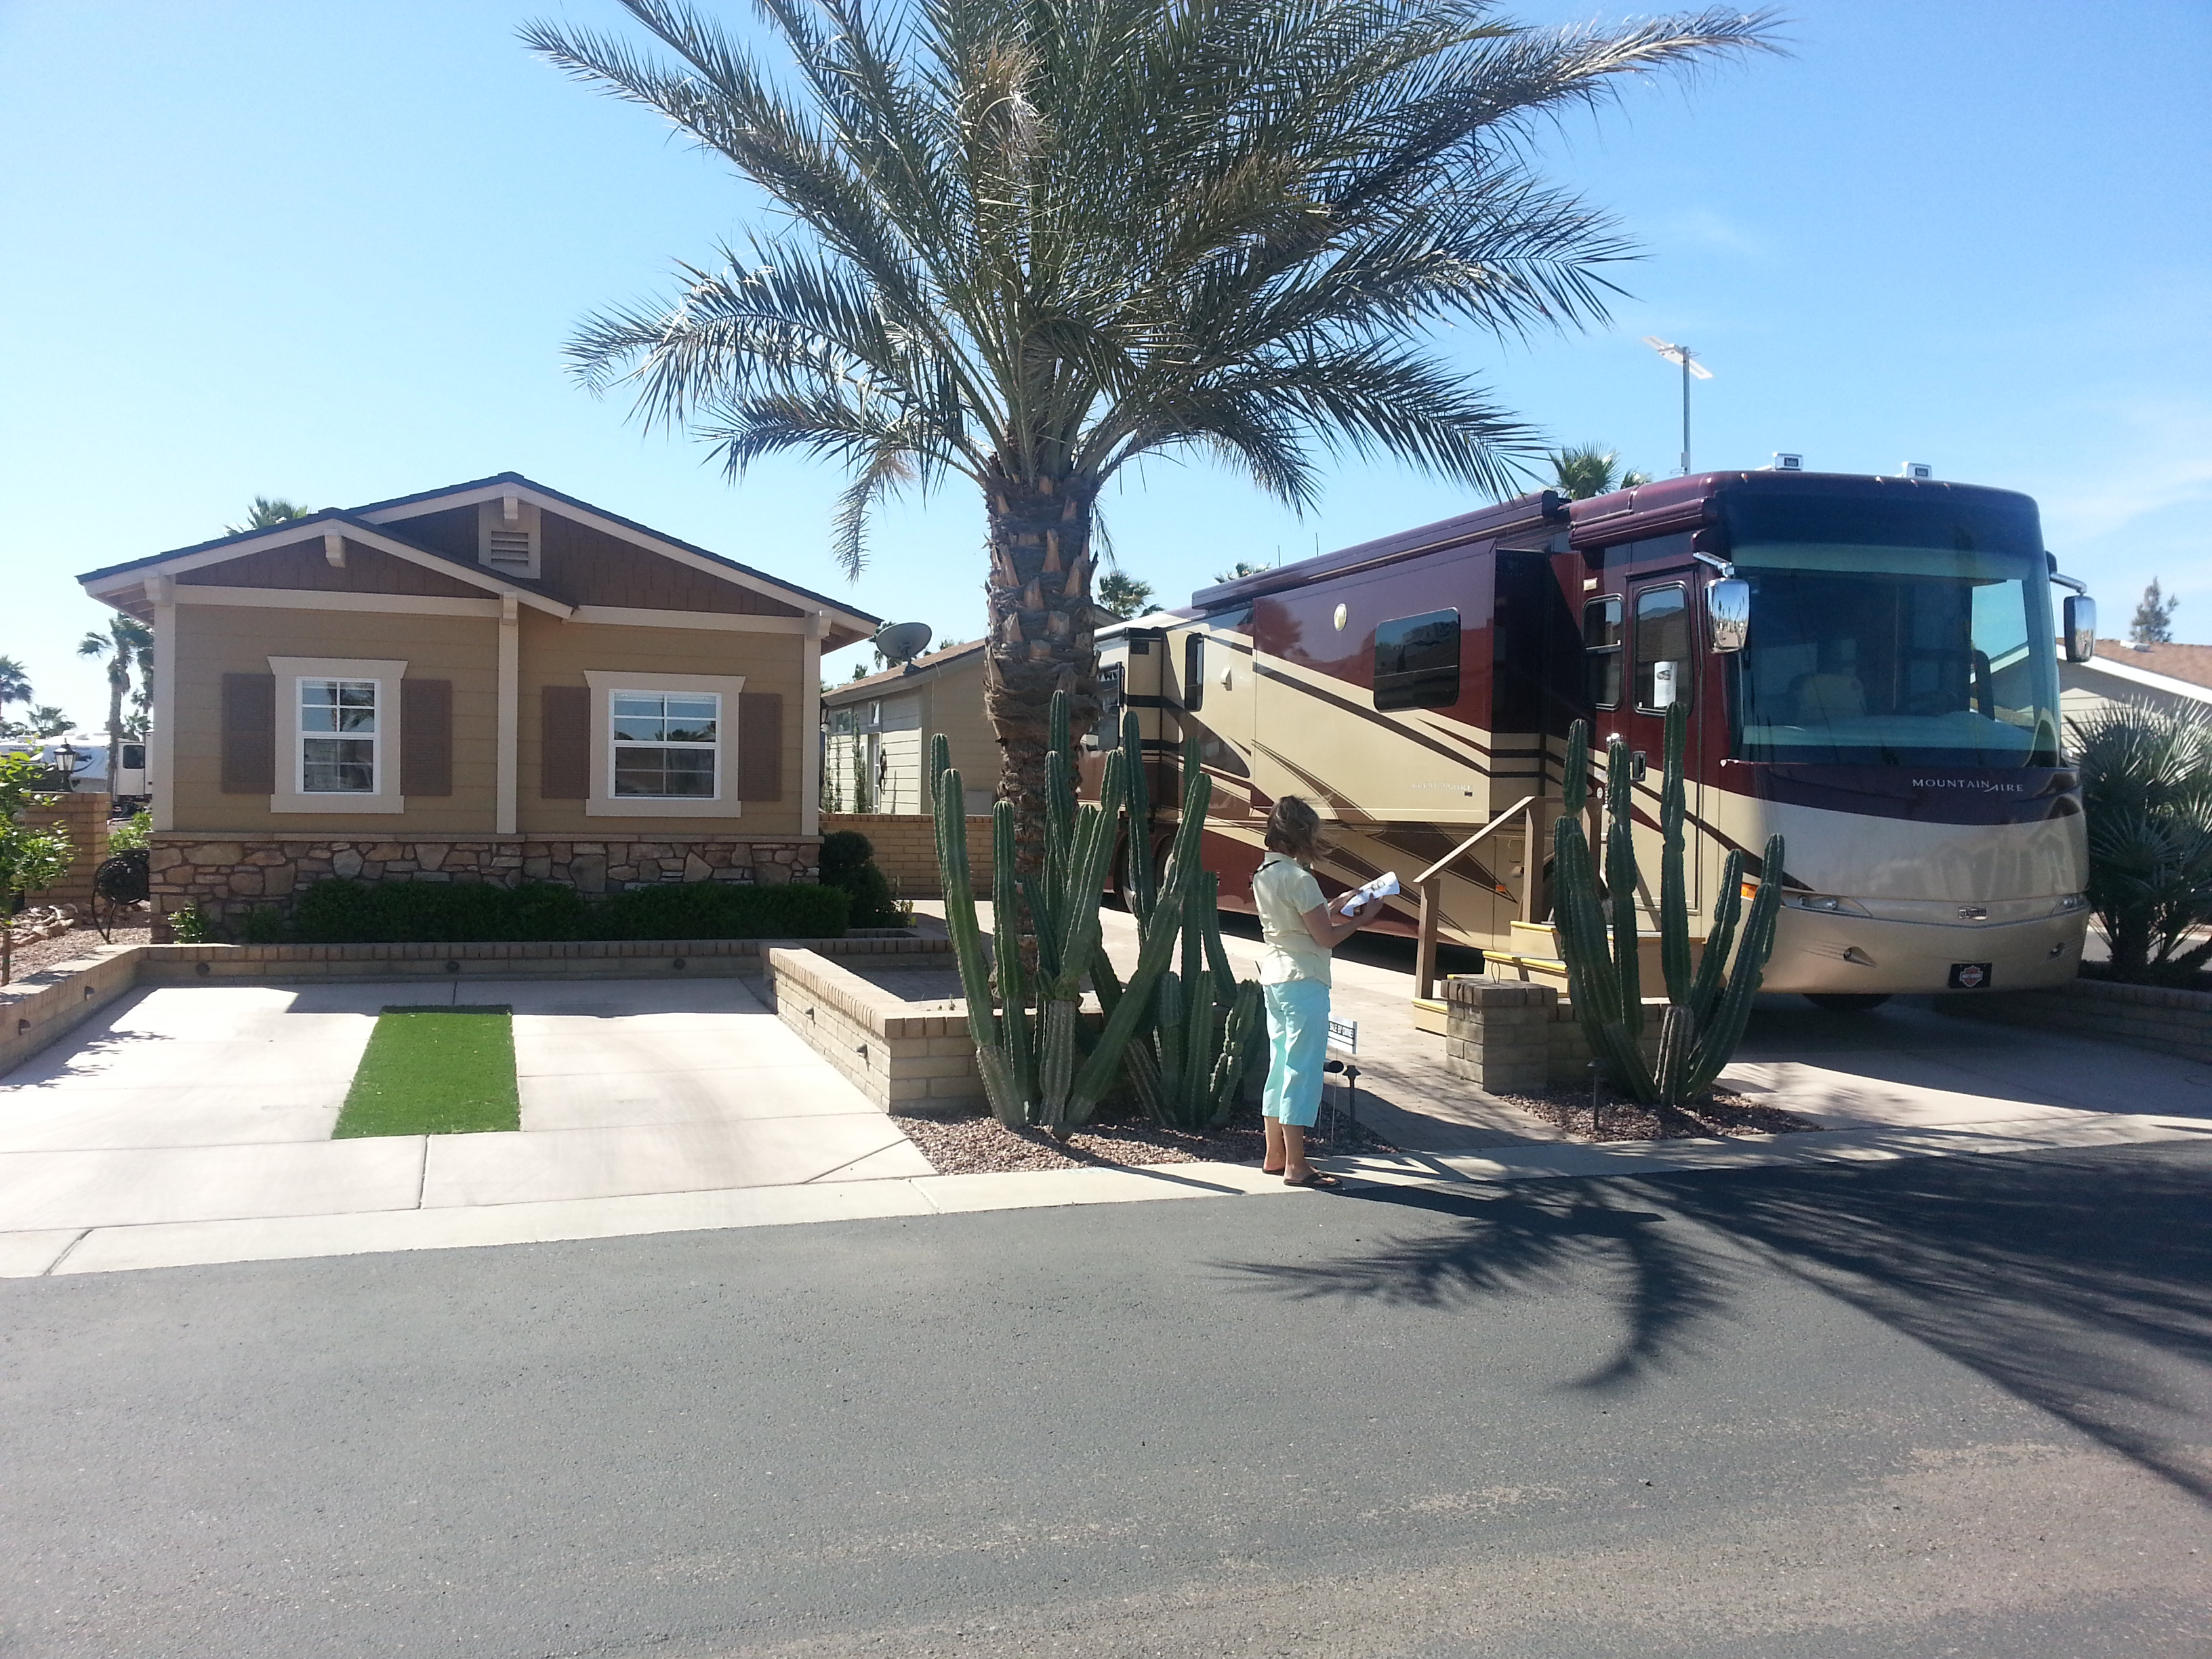 Our Stay At Palm Creek Rv Resort In Casa Grande Arizona